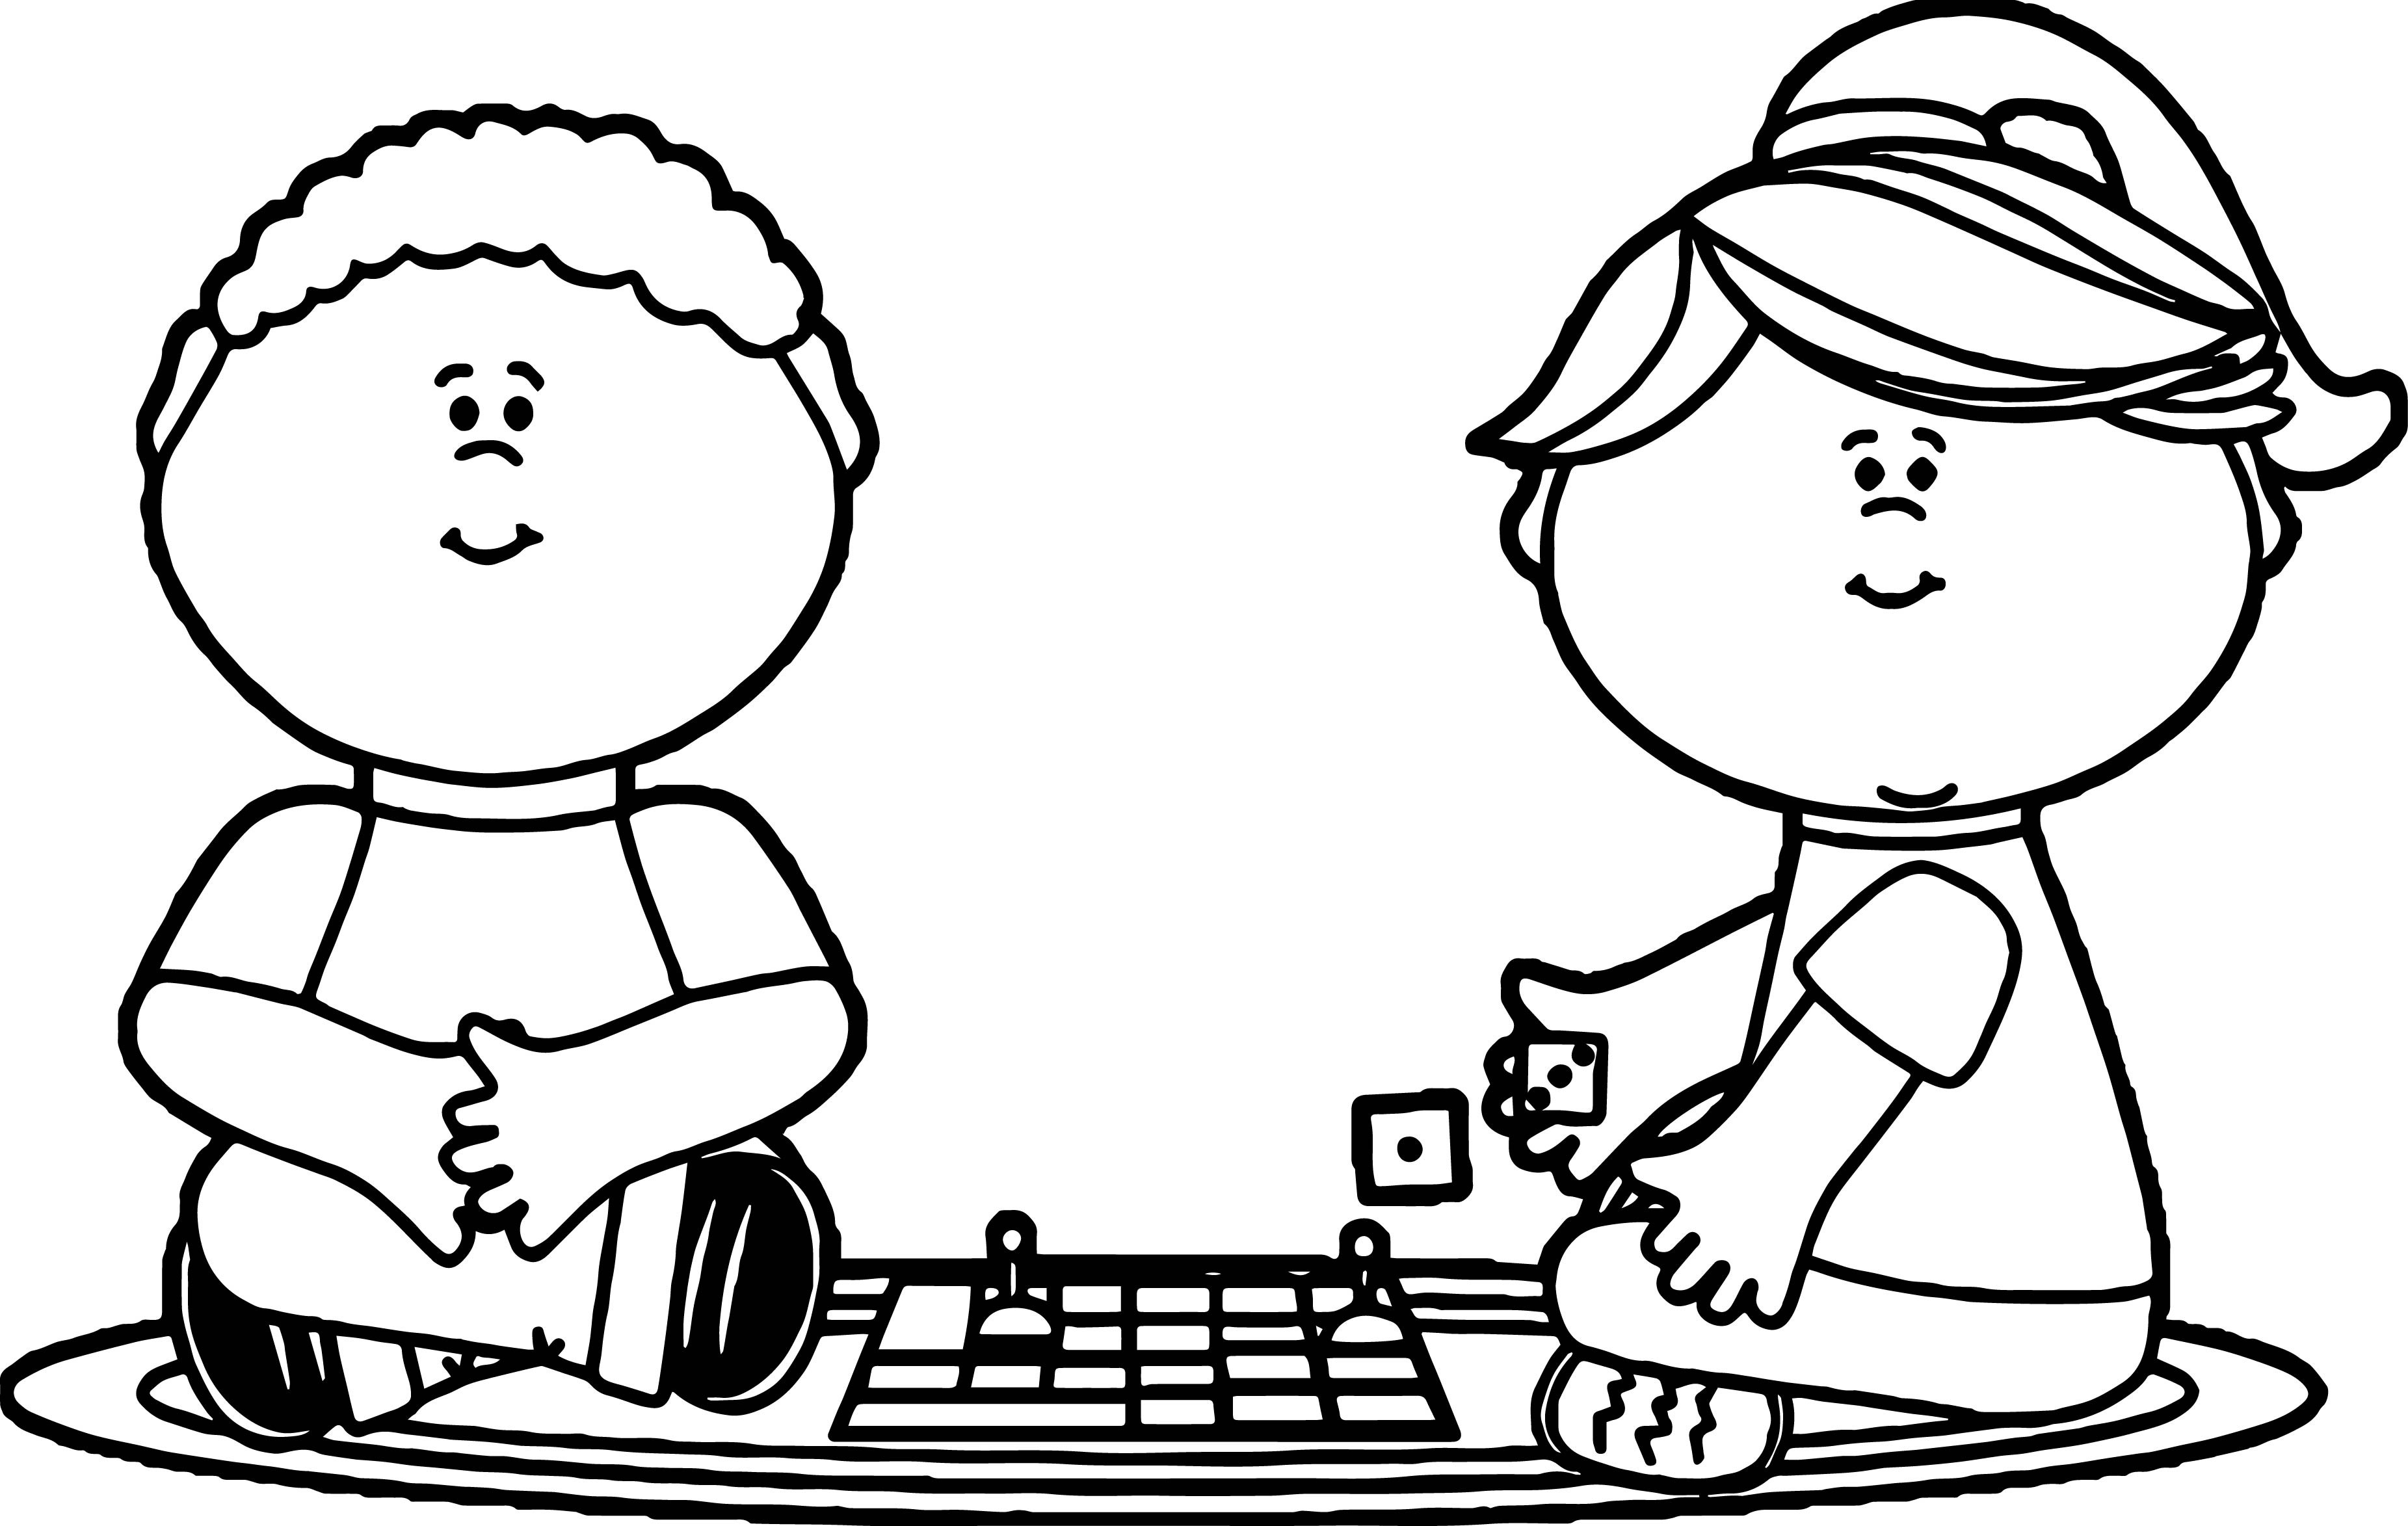 Coloring Pages For Kids Games  Board Game Coloring Pages